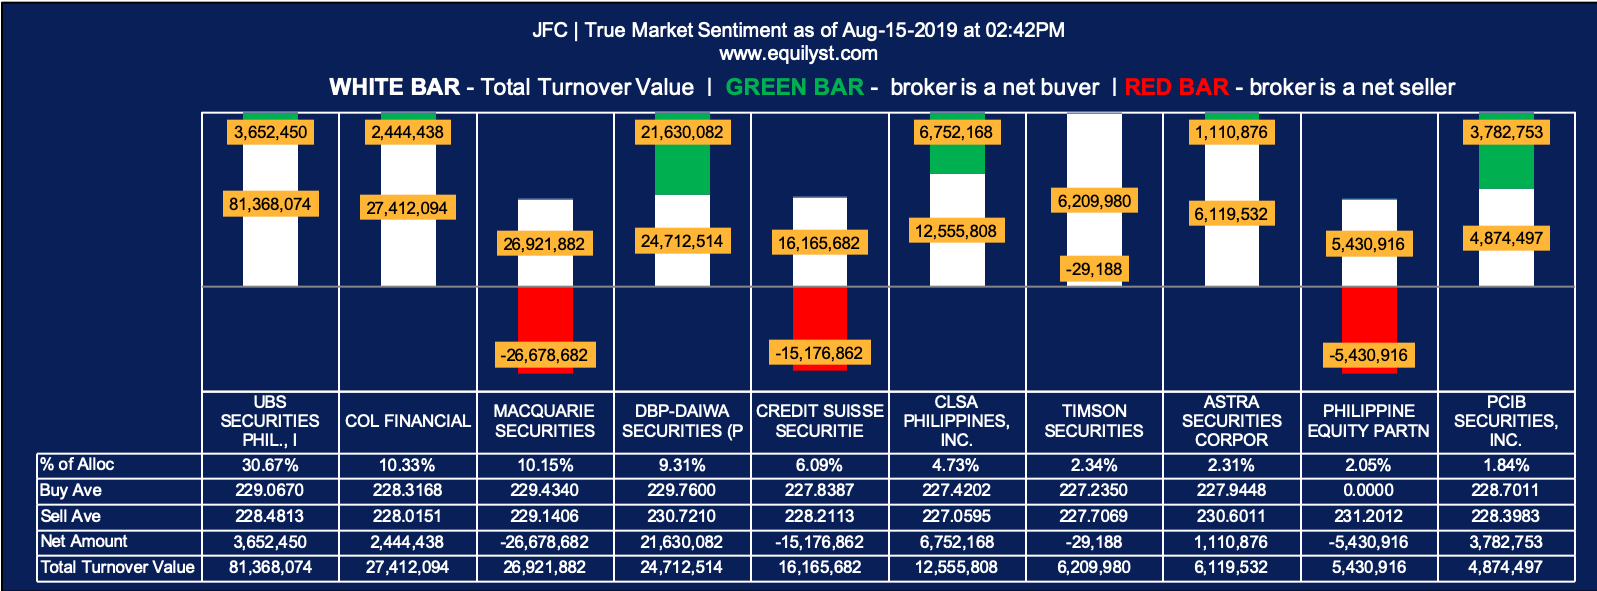 Jollibee Foods Corporation (JFC) - True Market Sentiment Intraday 1 - 8.15.2019